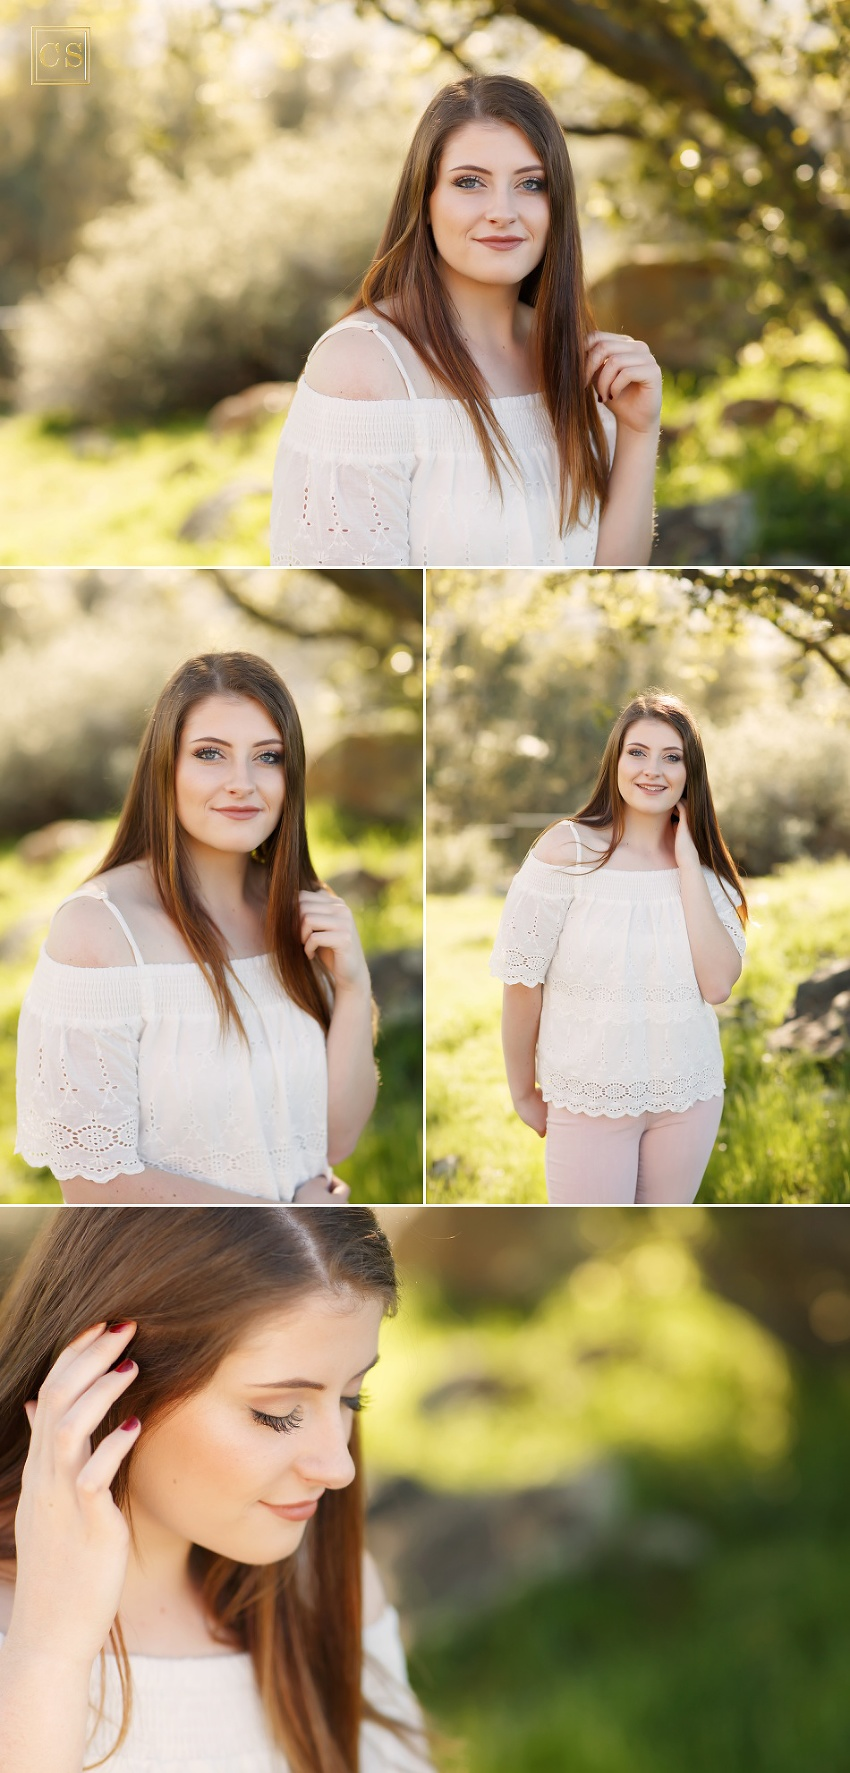 El Dorado senior pictures with senior photographer Colleen Sanders with green background, flowers, chair, pastels, softball player.